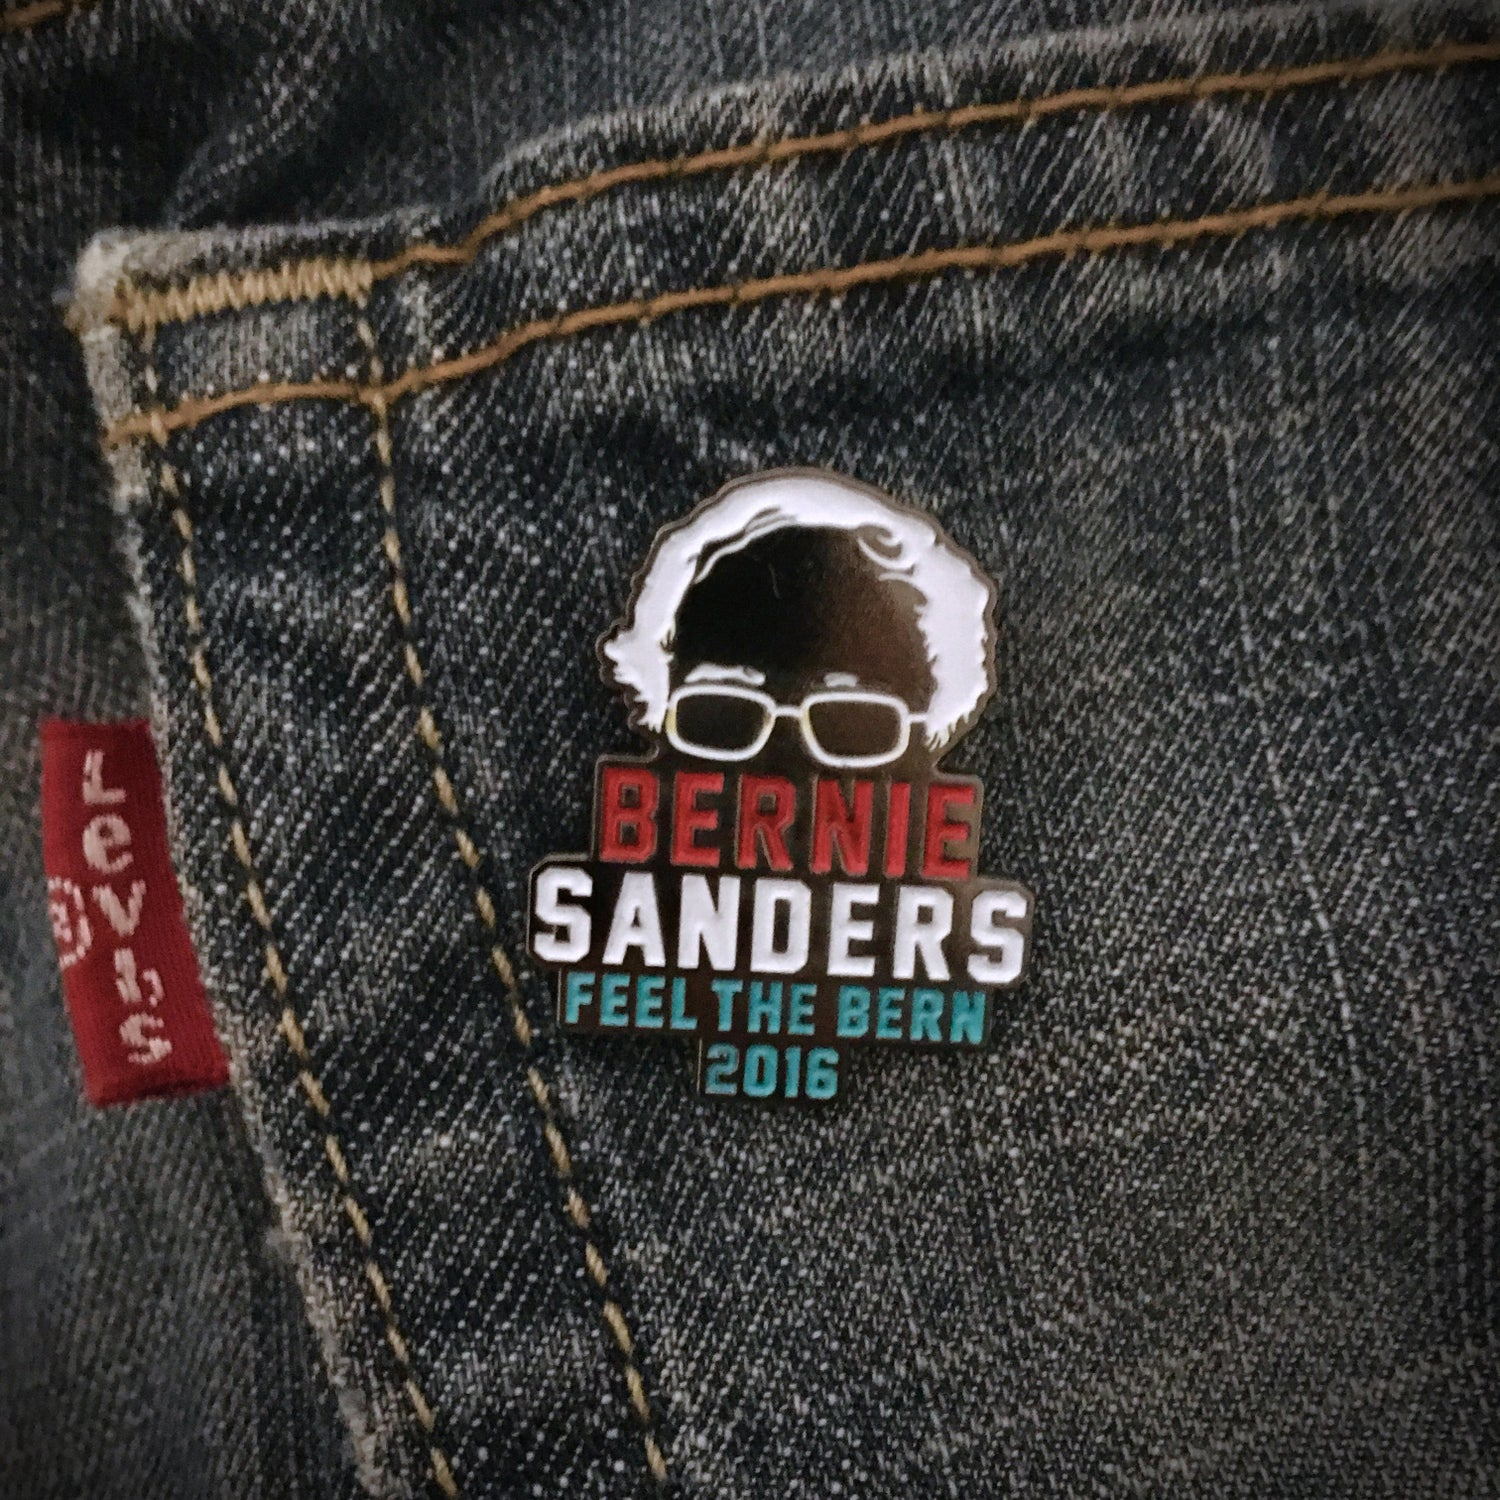 Image of Bernie Sanders 2016 Feel The Bern Enamel Pin